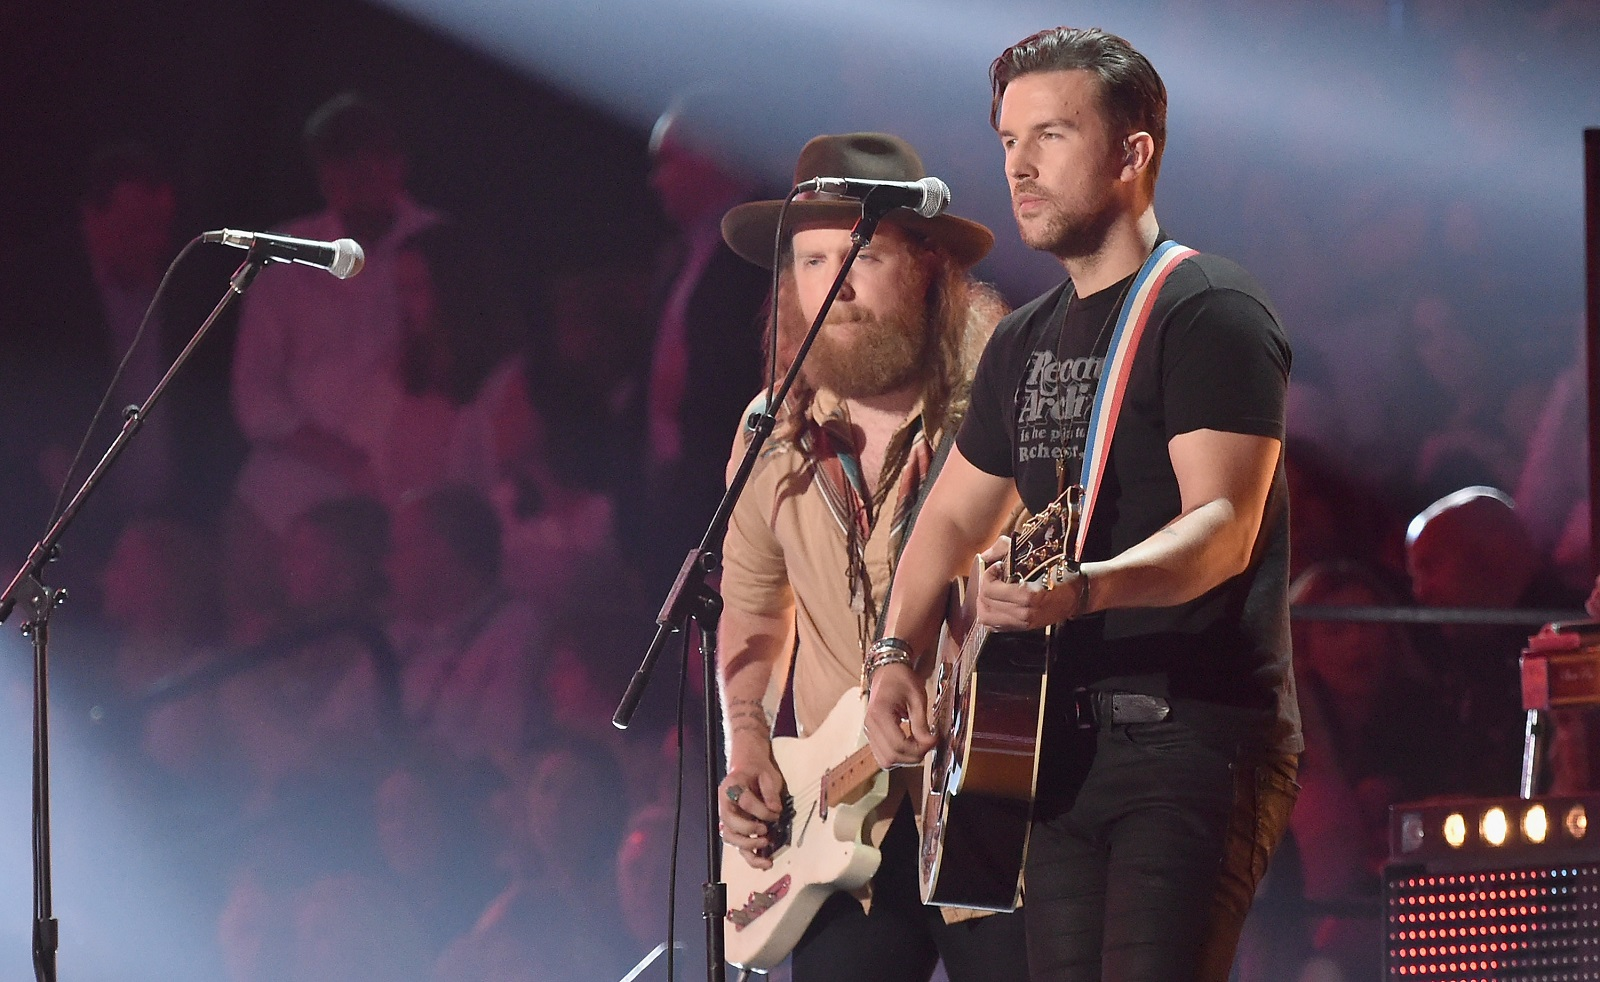 Brothers Osborne will headline the University at Buffalo Bulls' Tailgate Concert Series show on Oct. 15, 2016. (Getty Images)